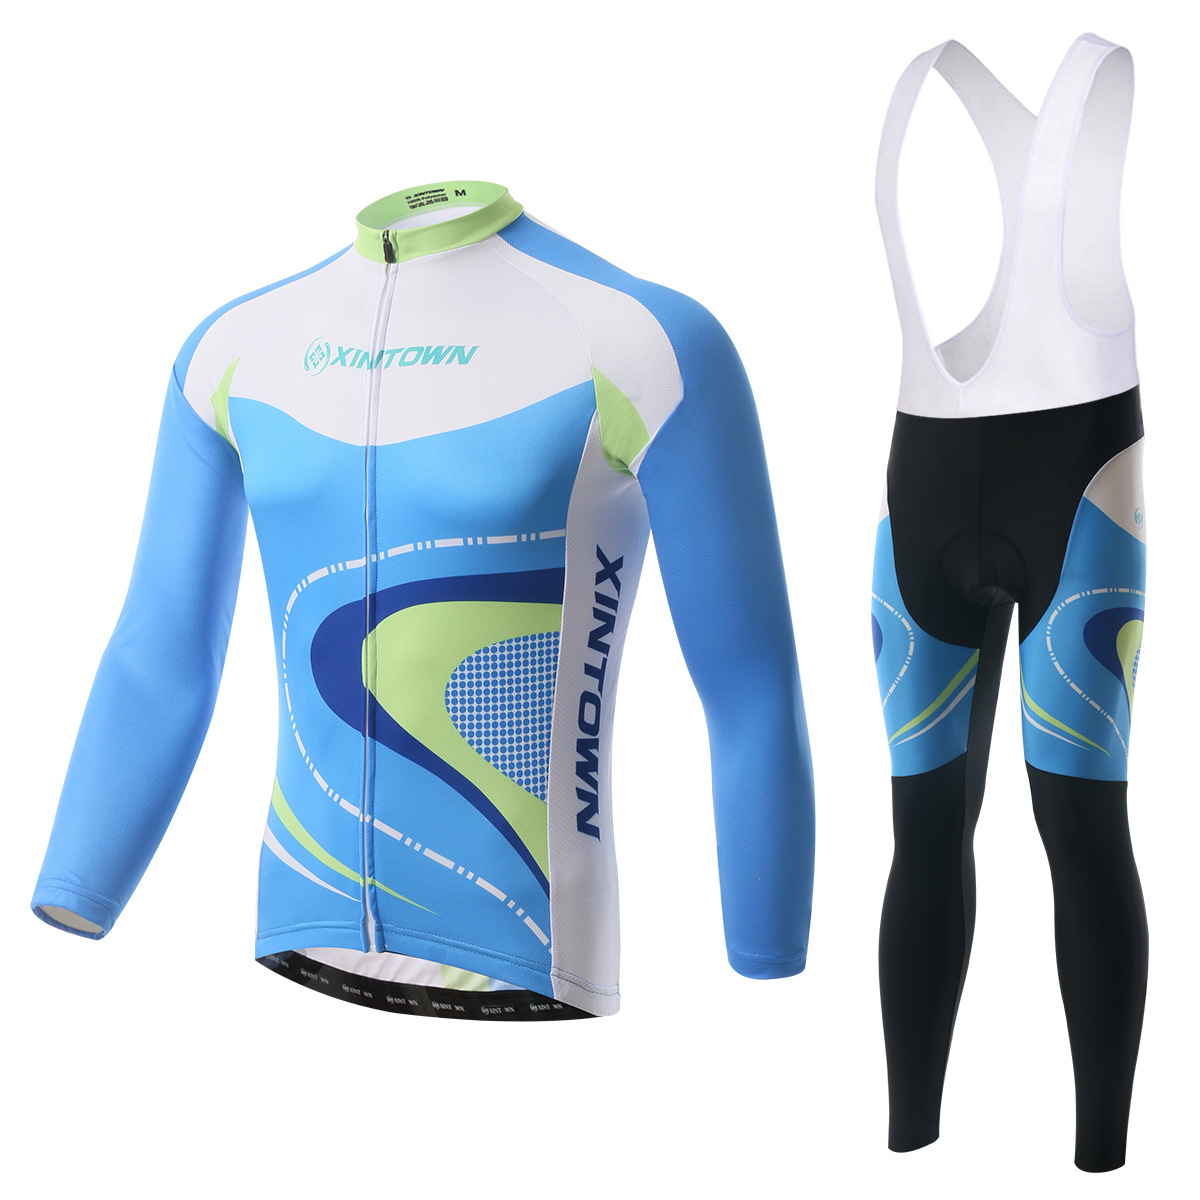 ls cycling jersey+bib pants (5)